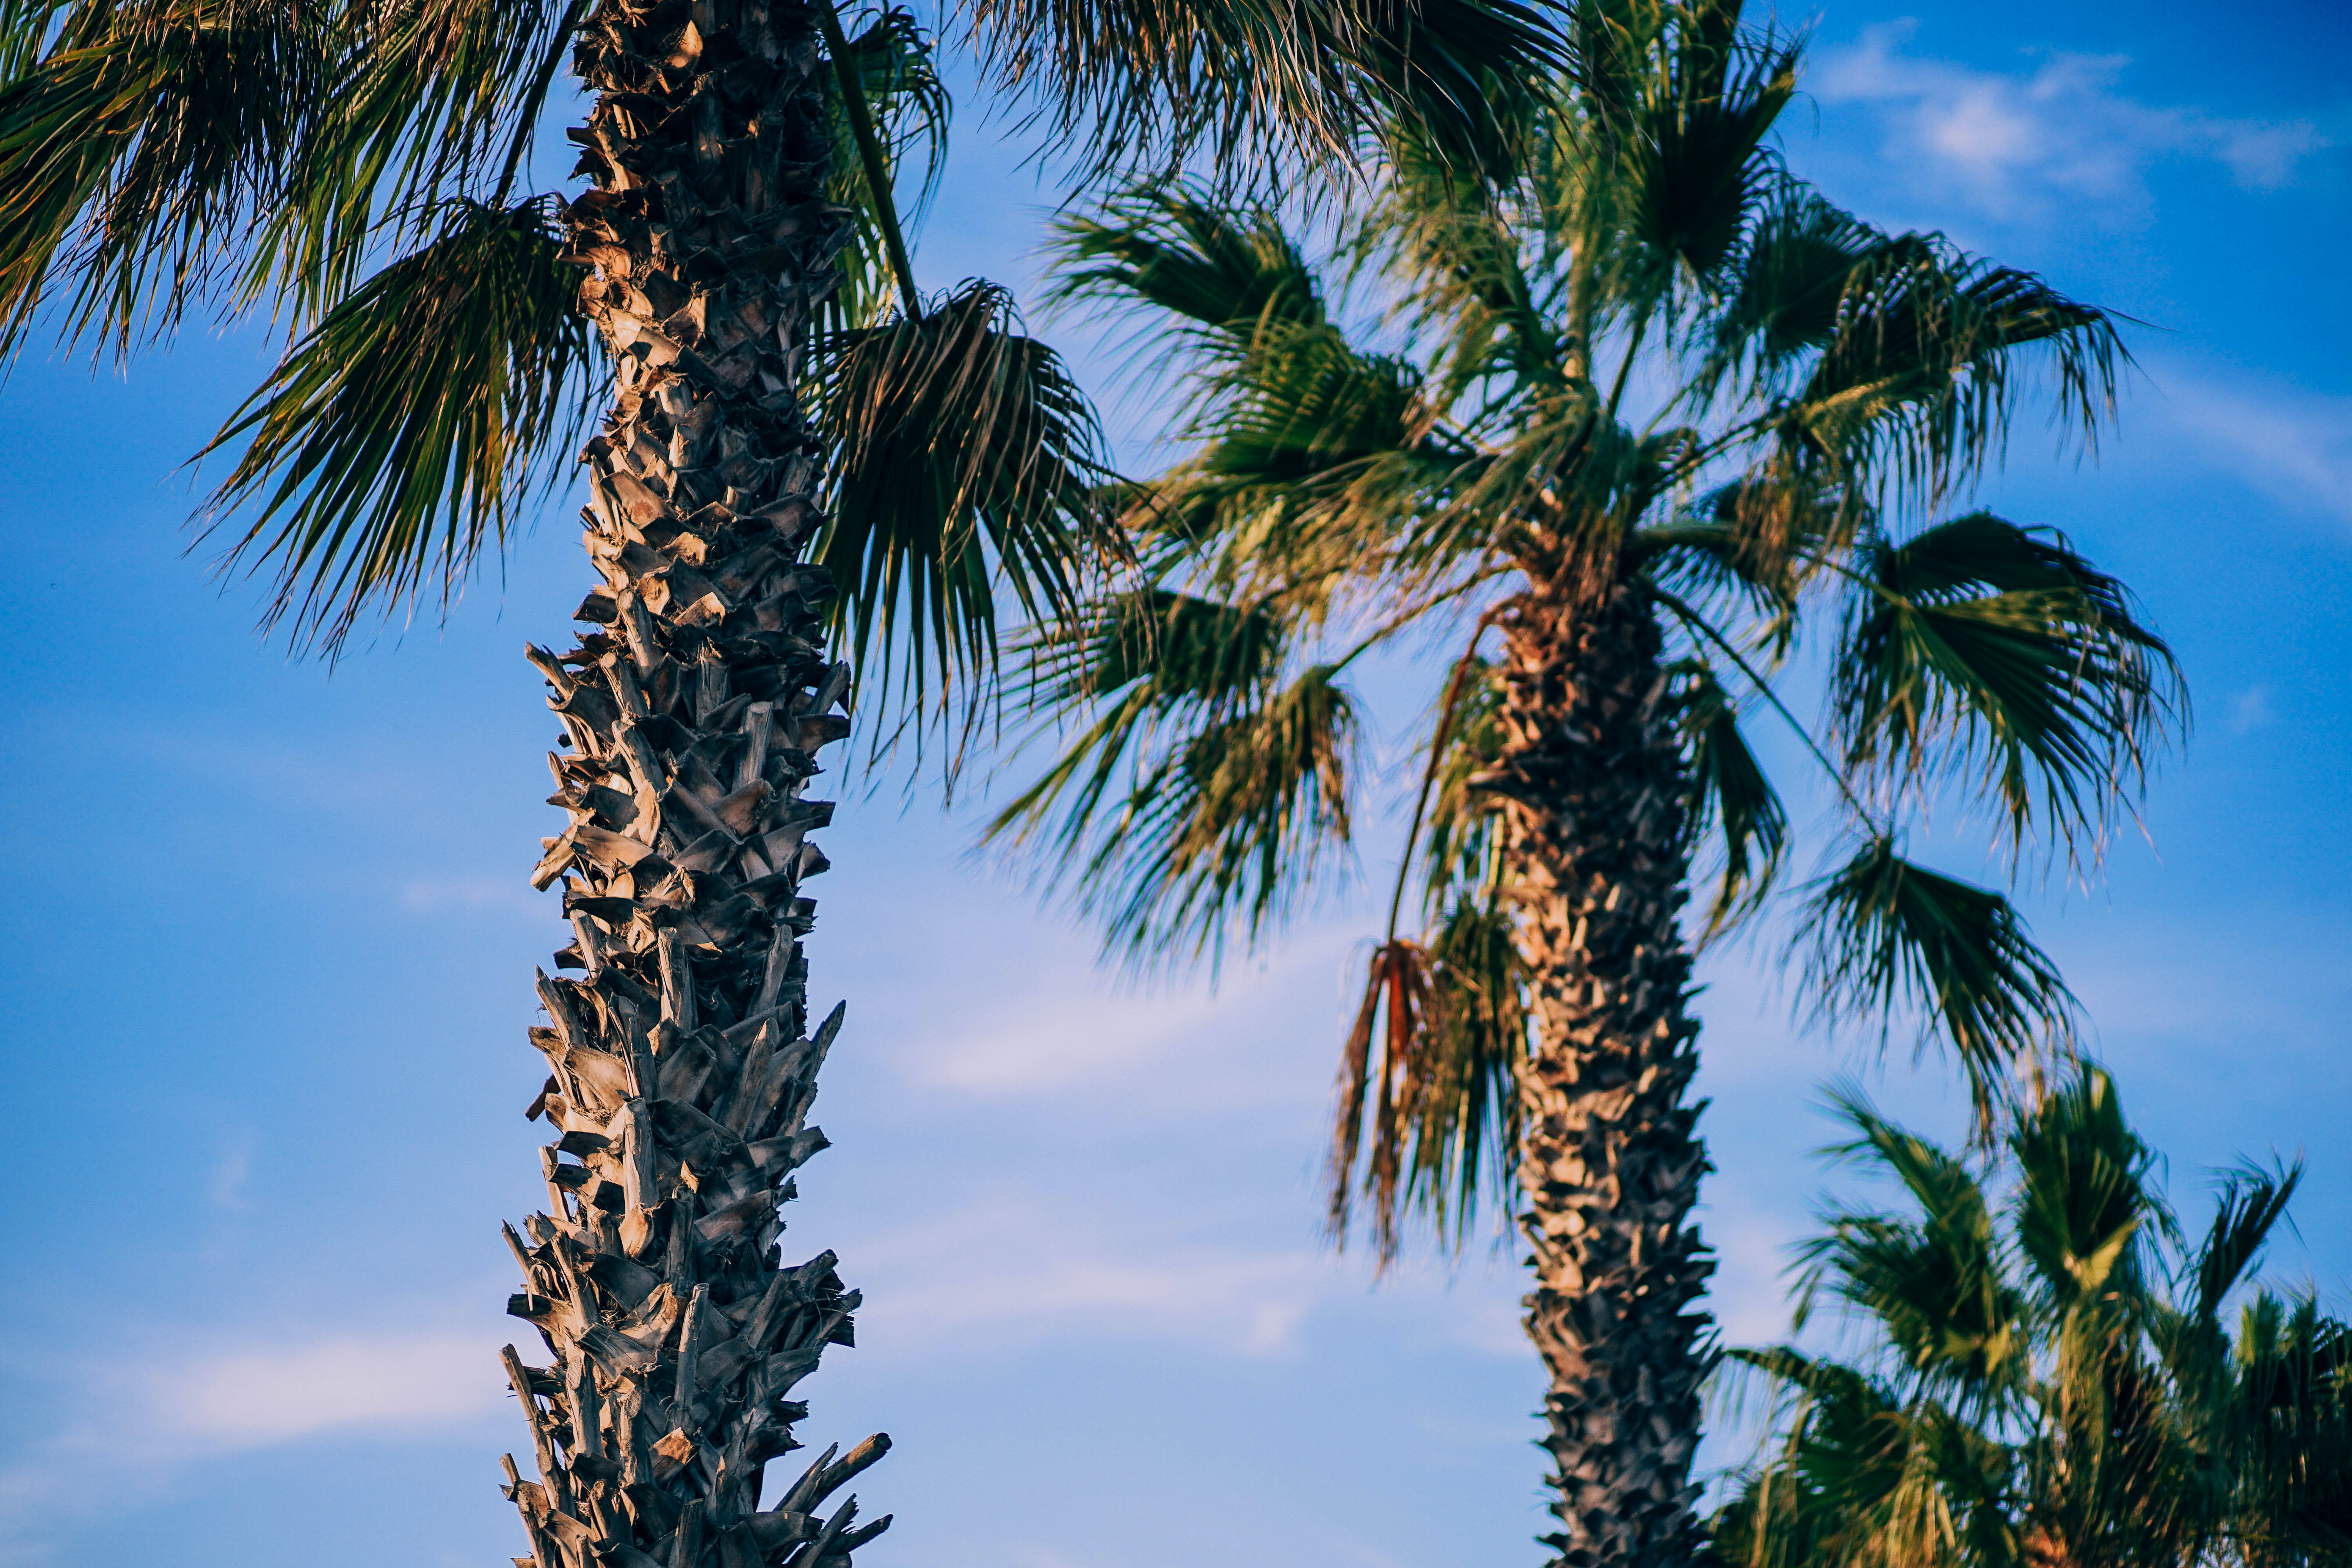 Palm tree trunks and fronds in front of a cloudy blue sky in Valencia